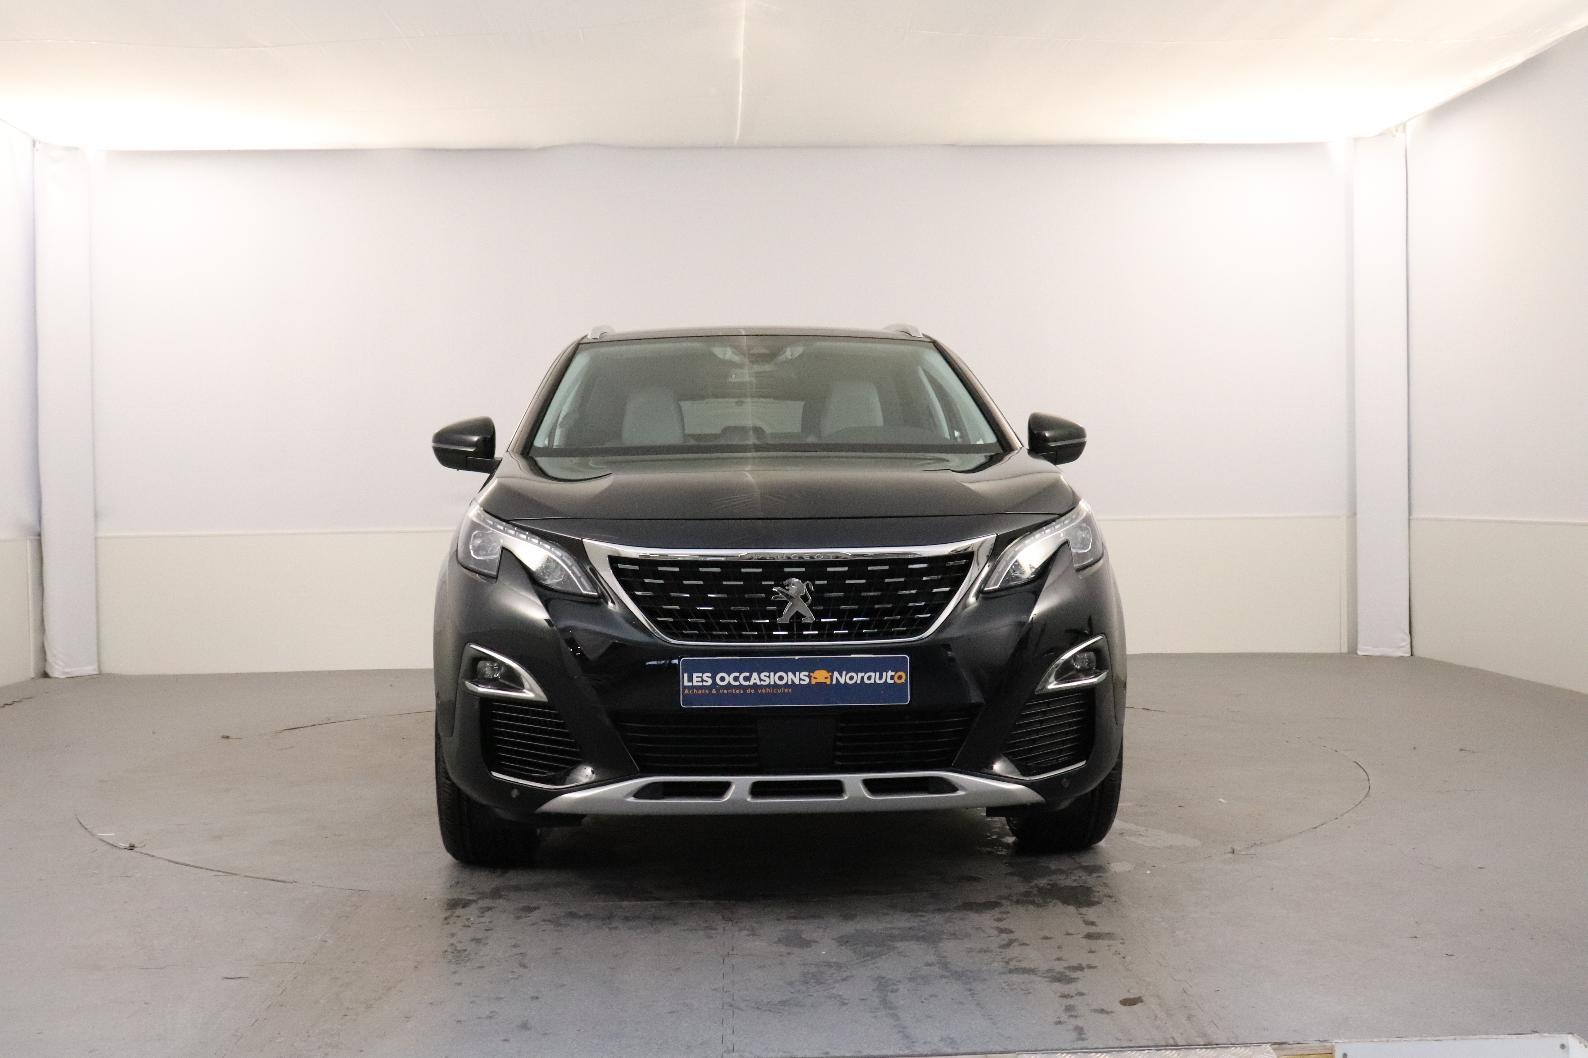 PEUGEOT 3008 BUSINESS 3008 1.2 Puretech 130ch S&S EAT6 Allure Business